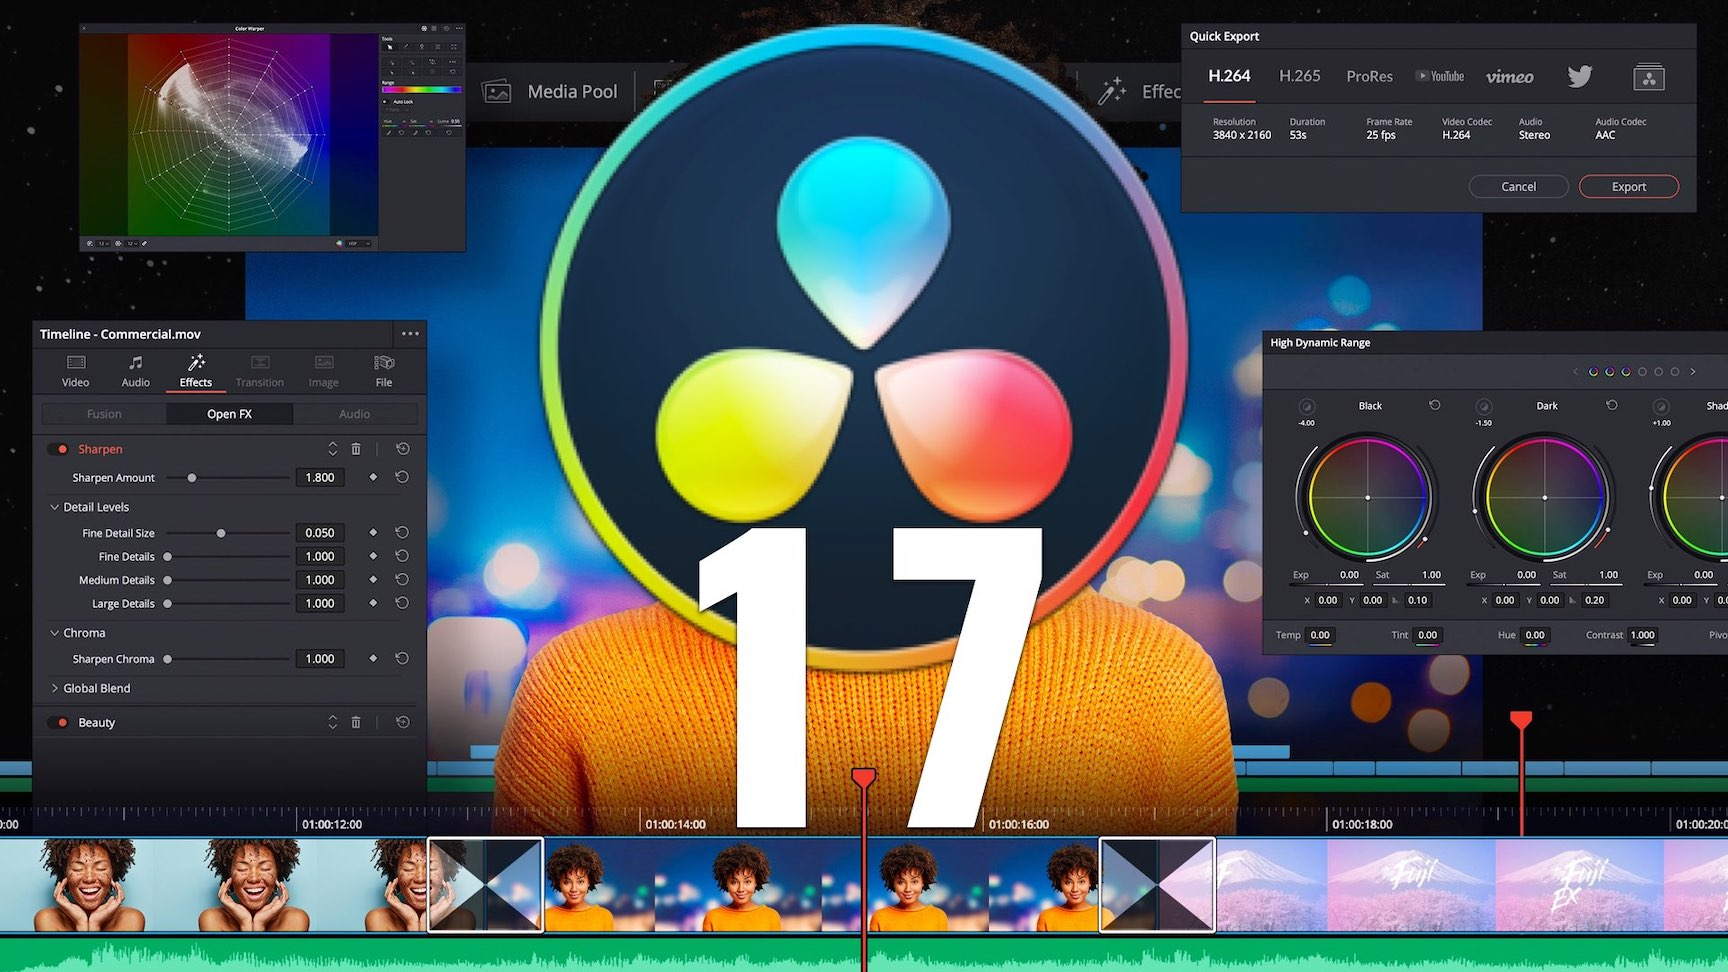 Blackmagic-Design-Announces-DaVinci-Resolve-17